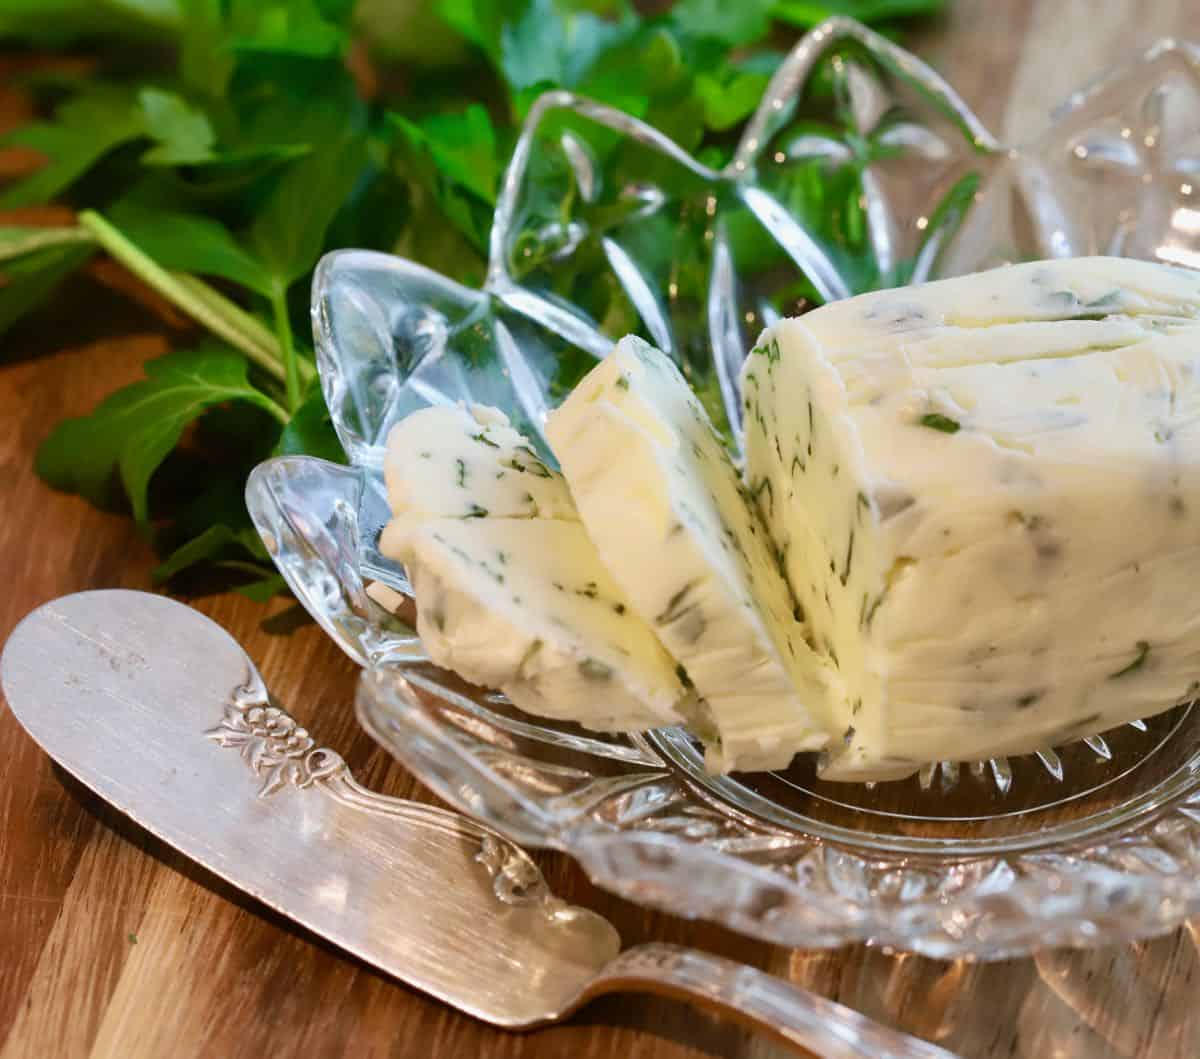 A cut glass dish with garlic herb butter slices.